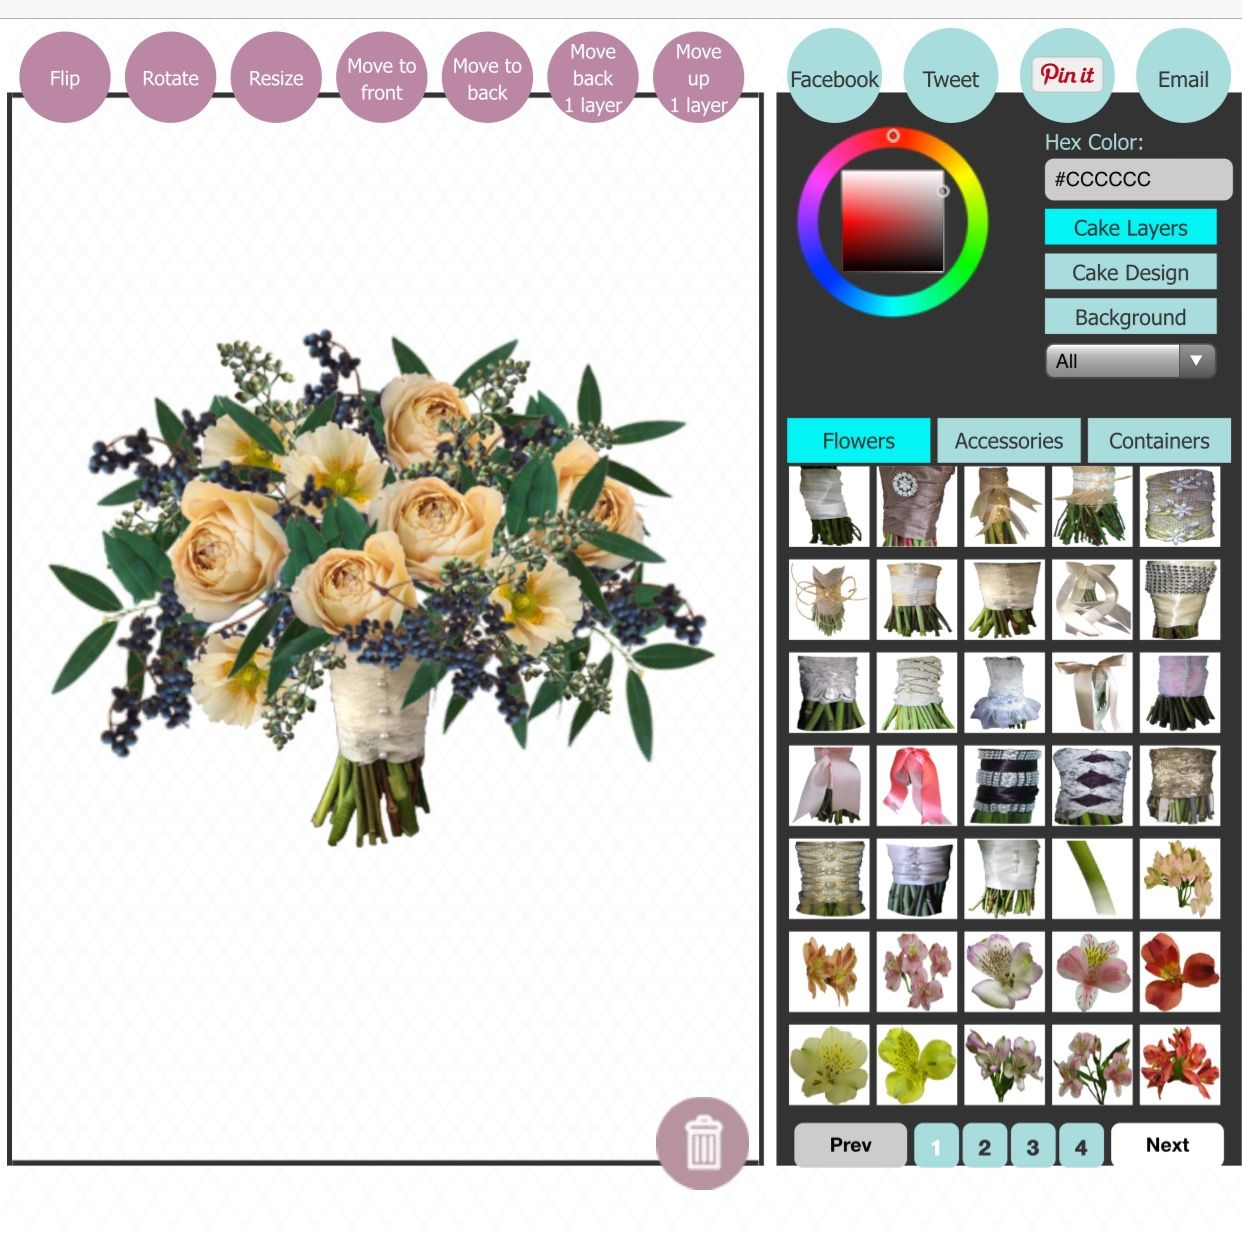 Wedding Bouquets Without Flowers: Design Wedding Bouquets Online! Virtual Wedding Creator